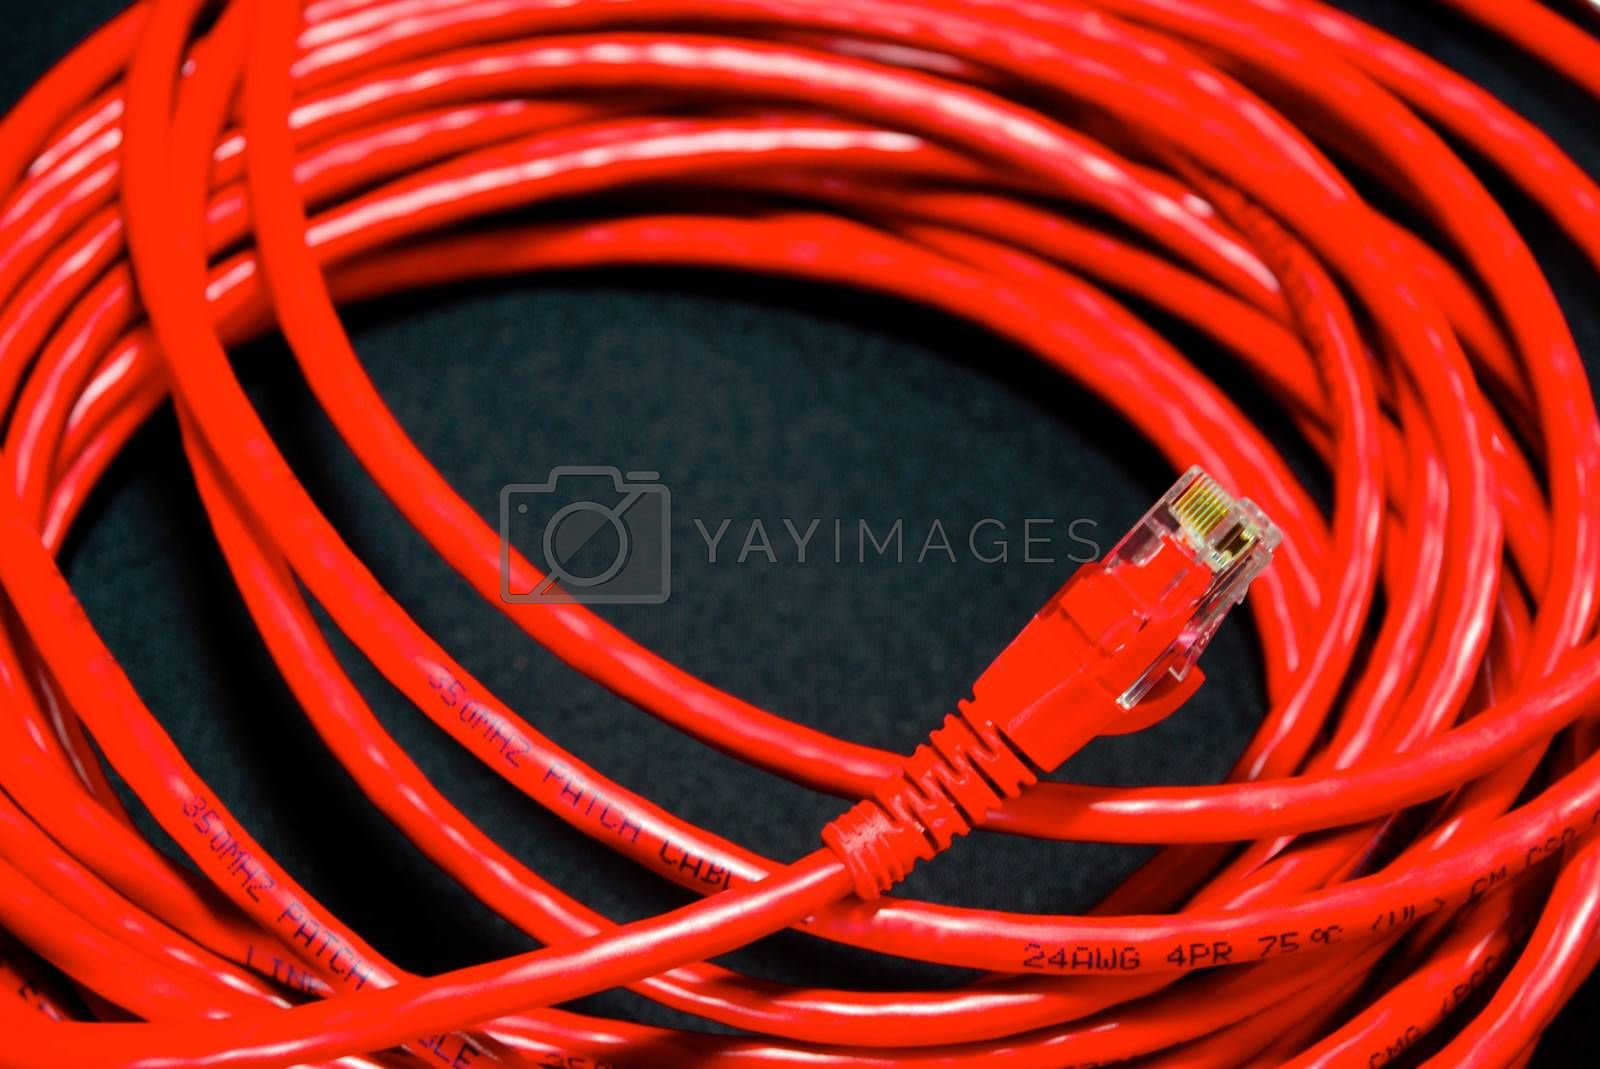 Royalty free image of cable and wire 8 by nattapatt